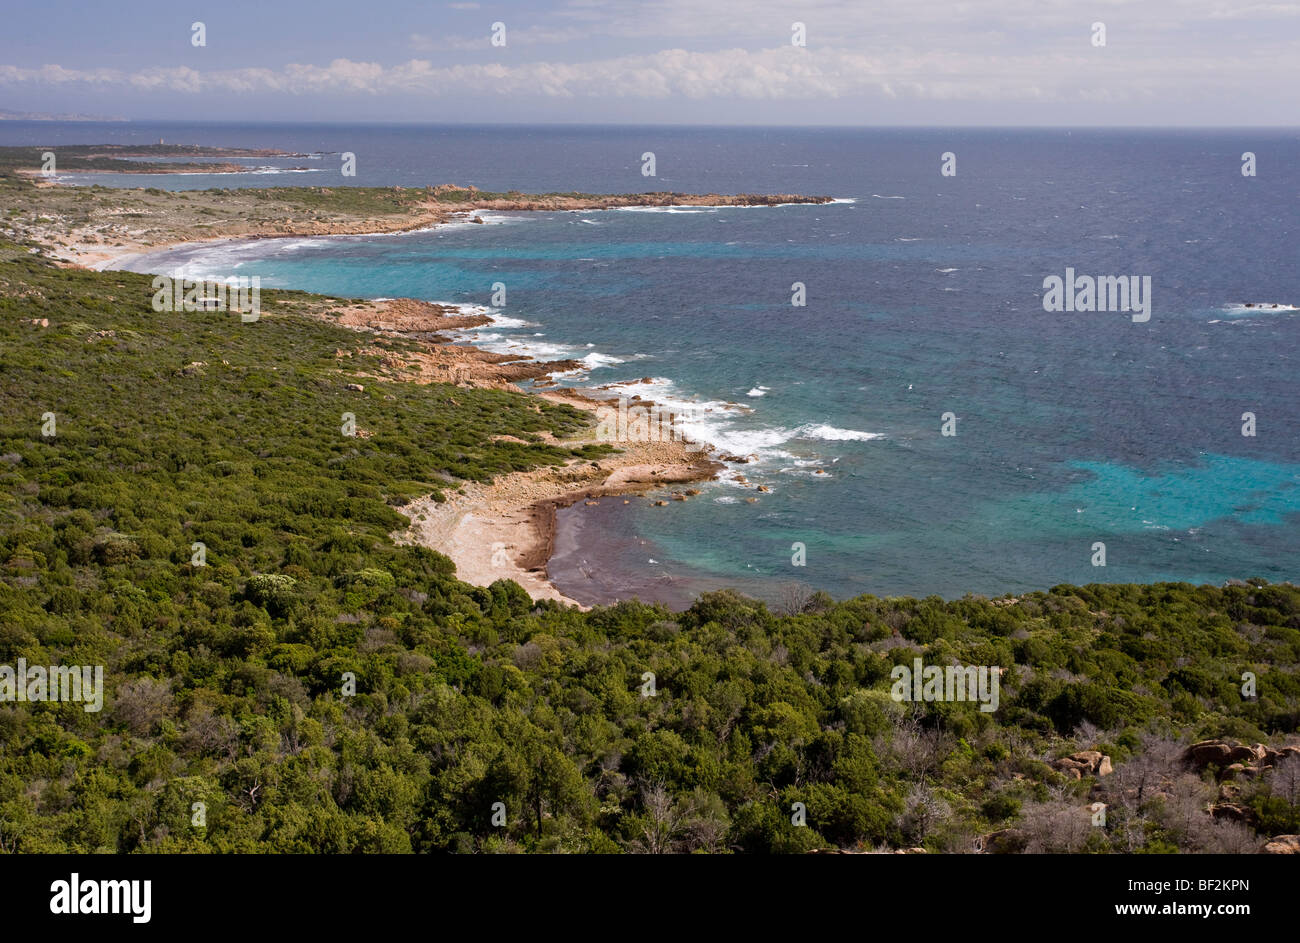 The wild exposed unspoilt granite south-west coast of Corsica, France. - Stock Image